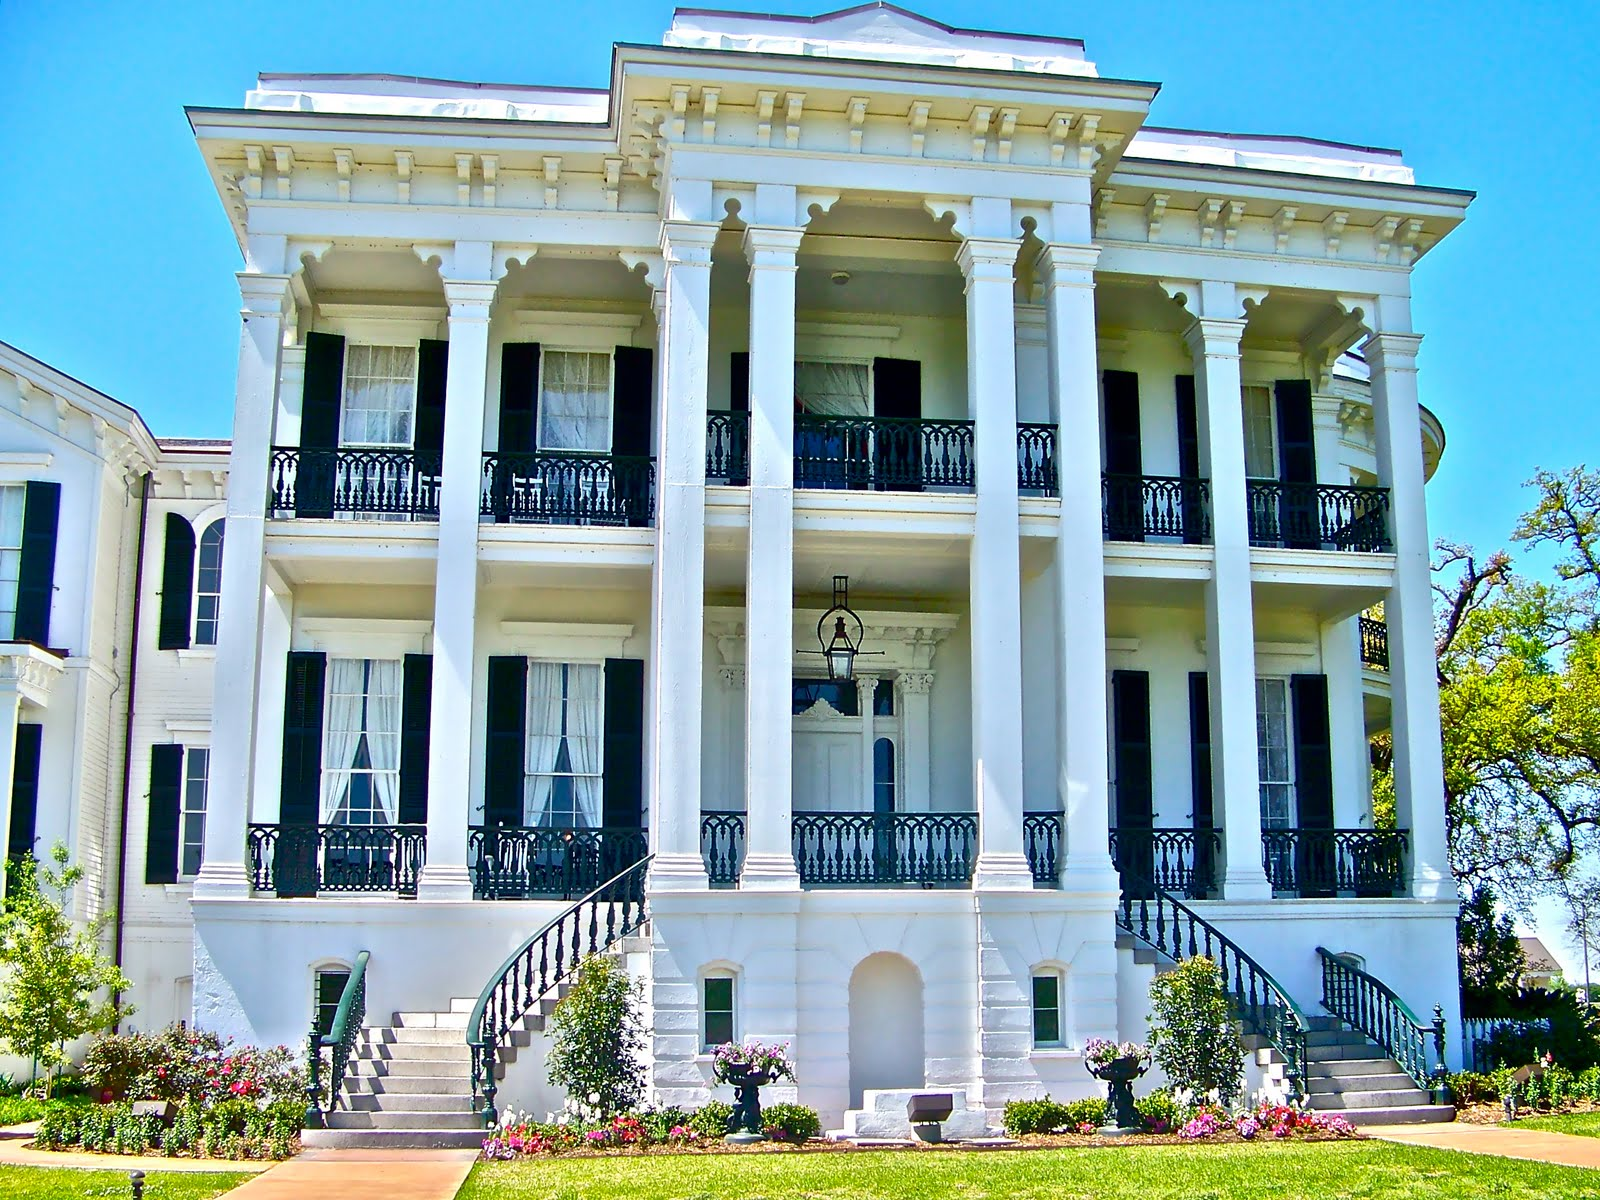 All About Houses: Southern Plantations